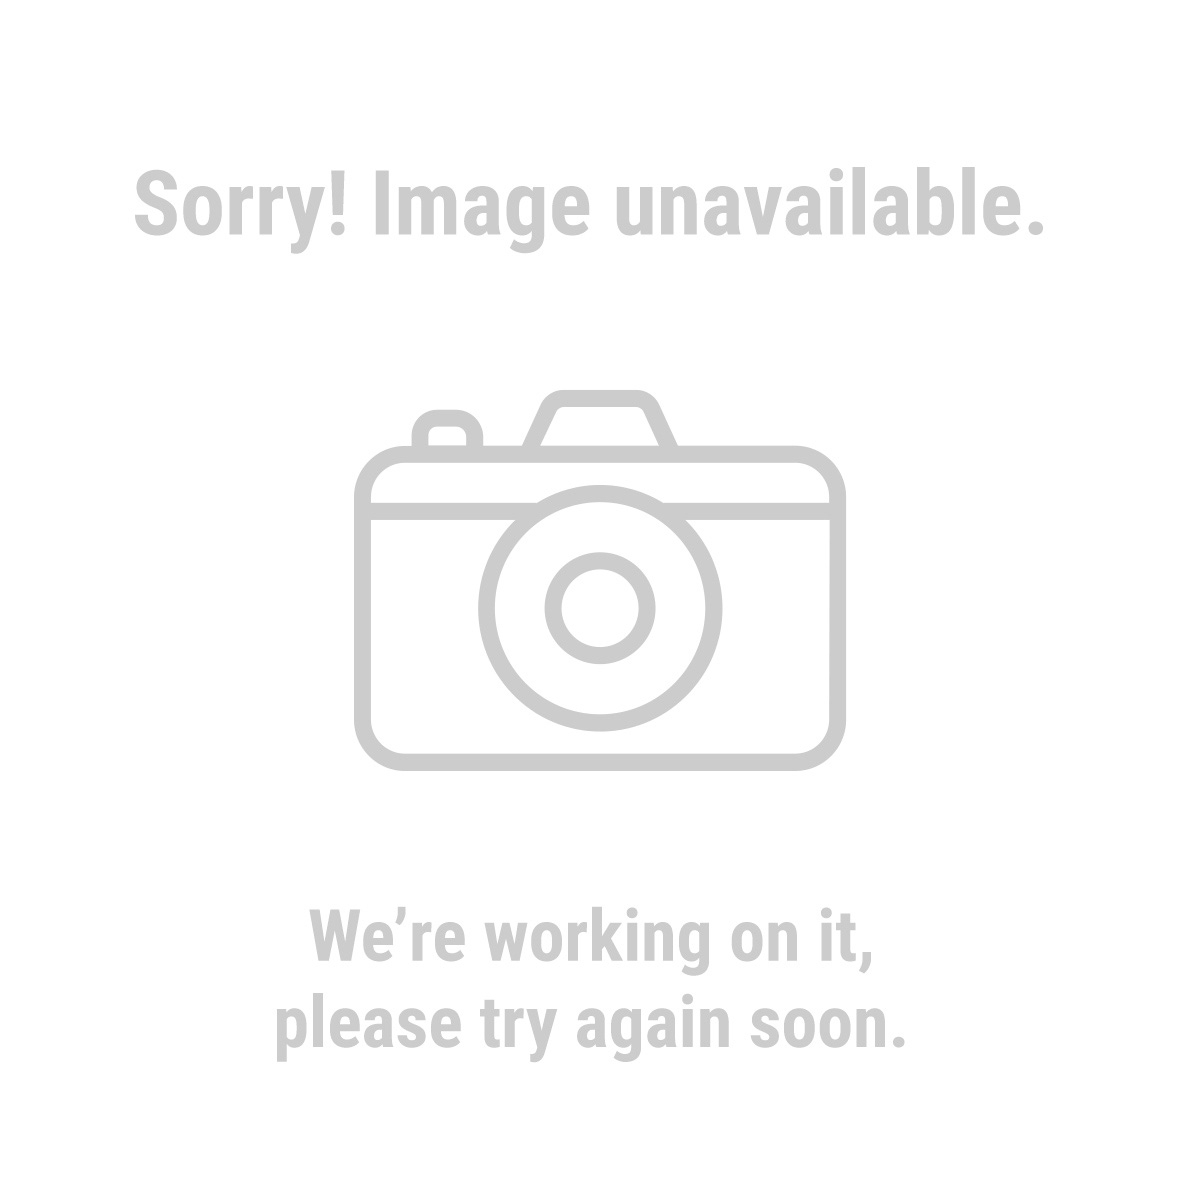 18 Volt 5 1 2 In Cordless Circular Saw With Laser Guide